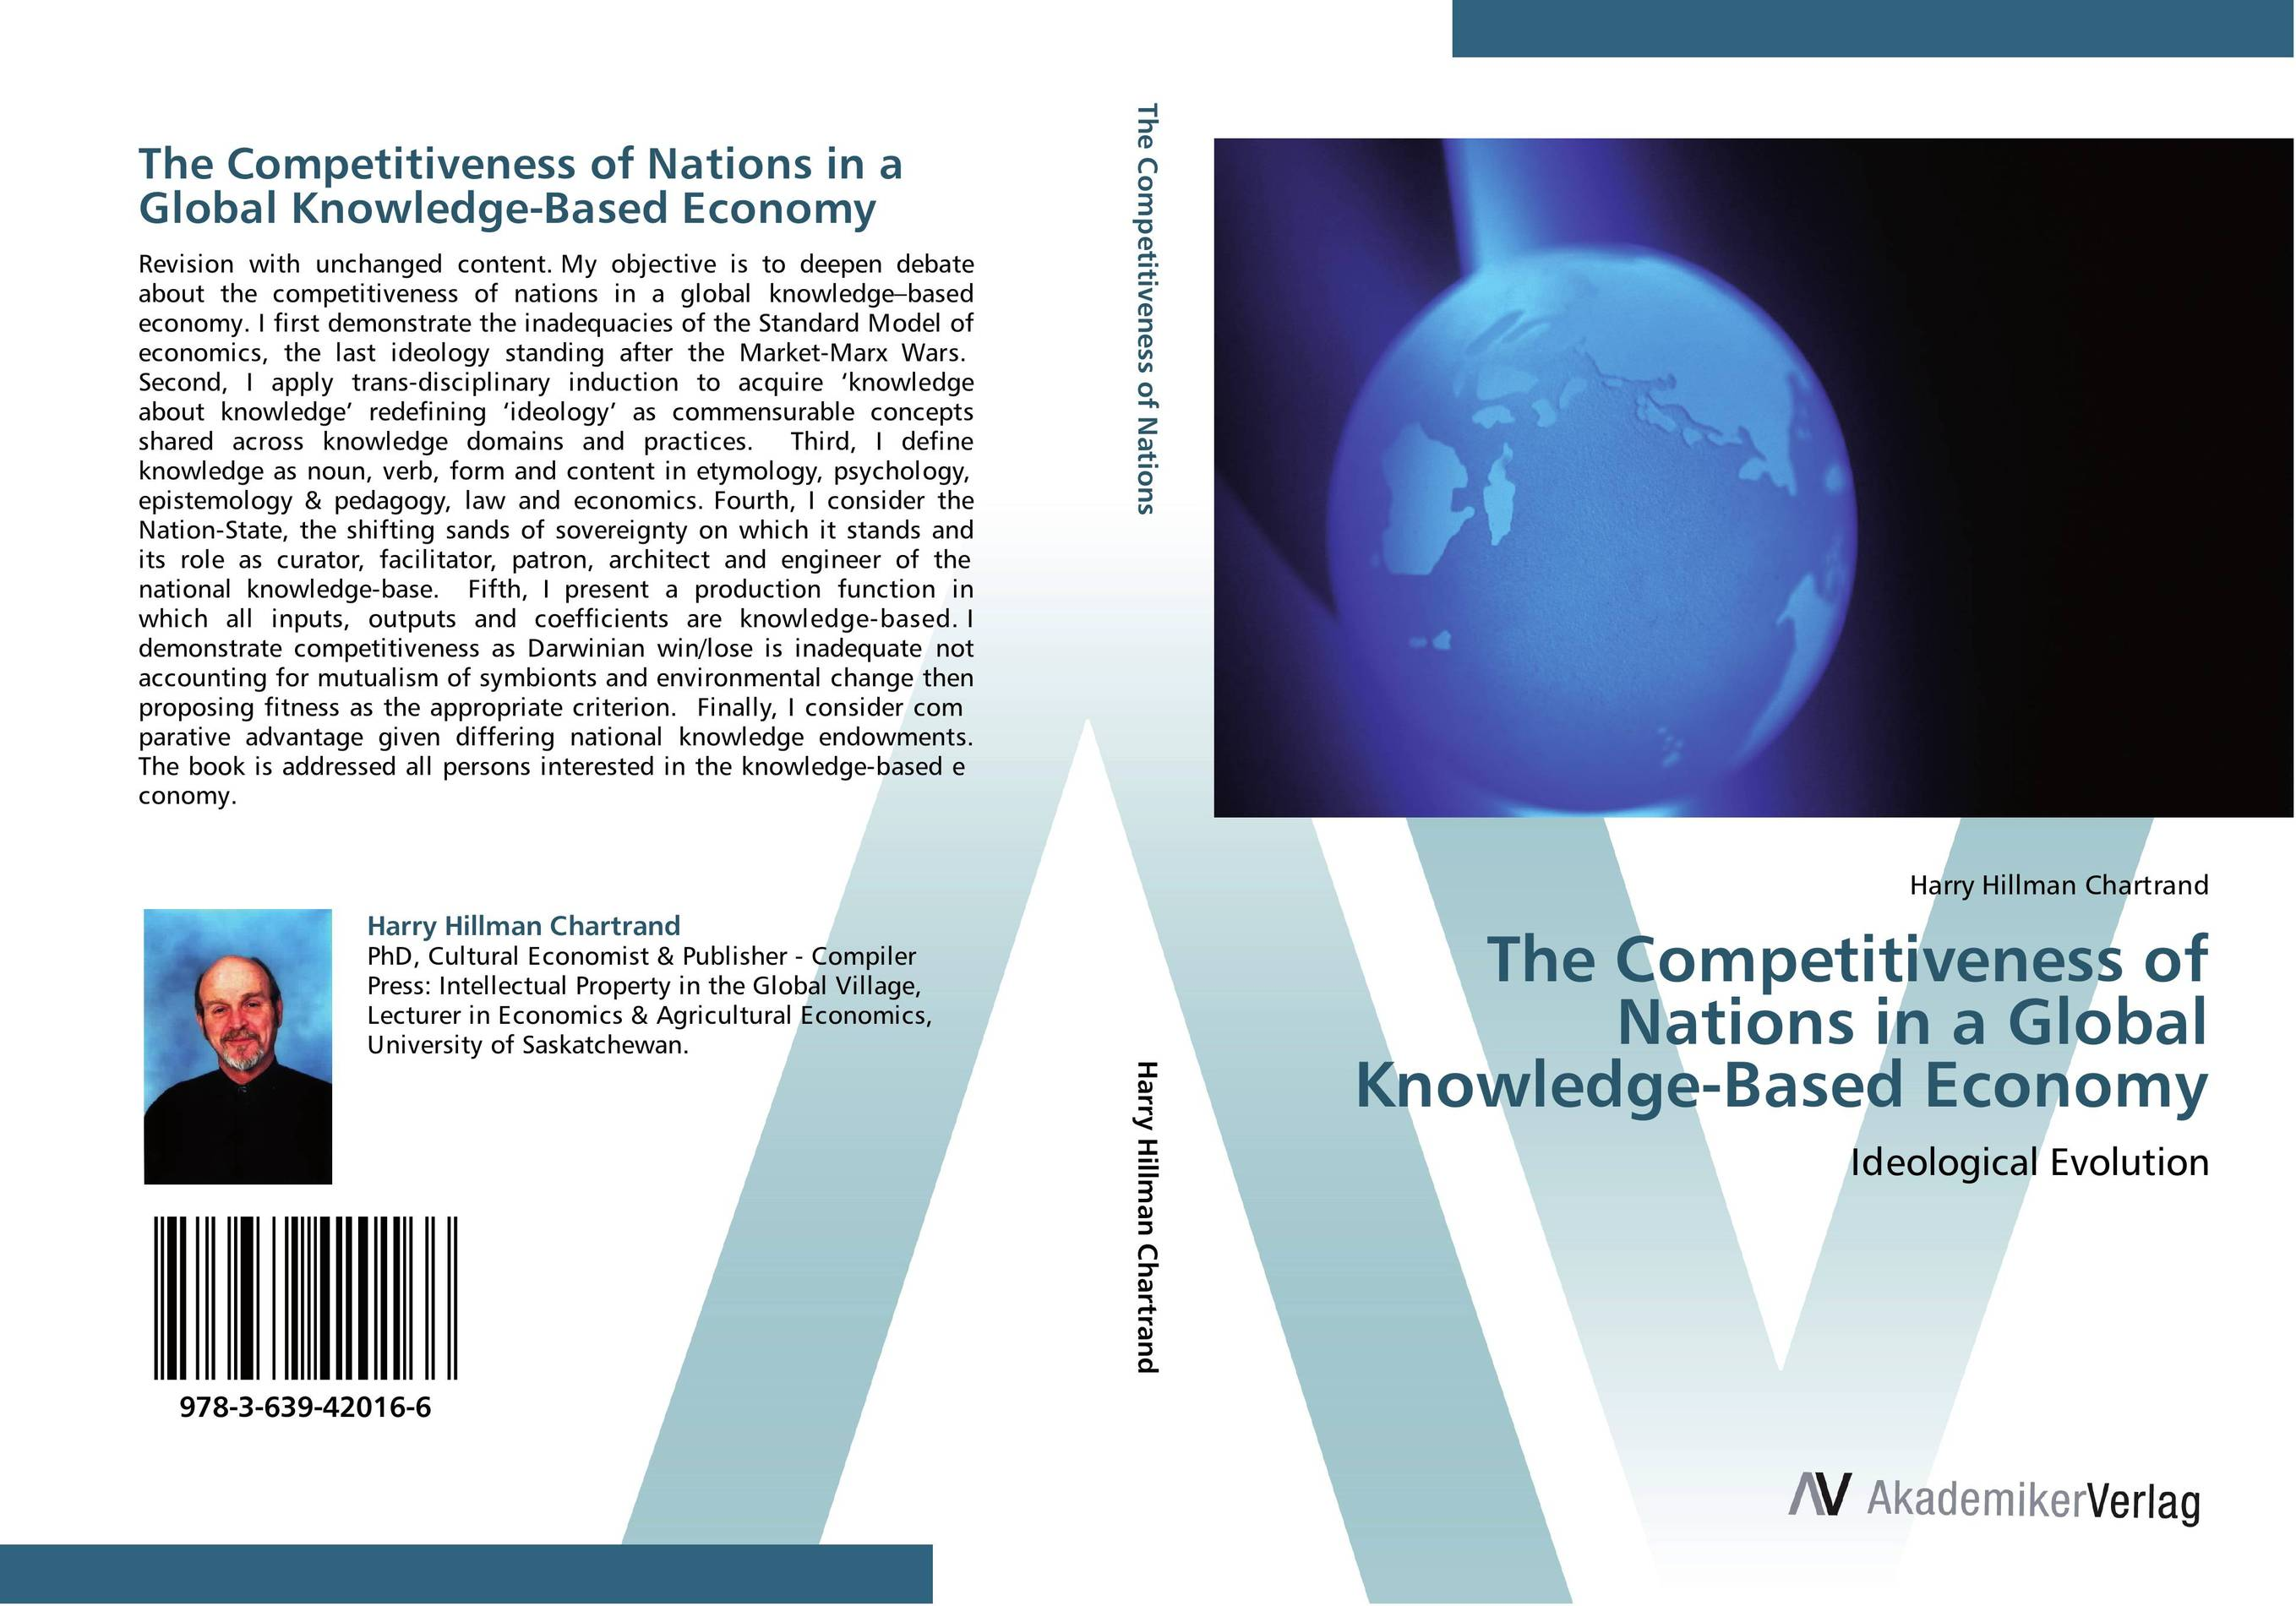 The Competitiveness of Nations in a Global Knowledge-Based Economy see yan lin the global economy in turbulent times